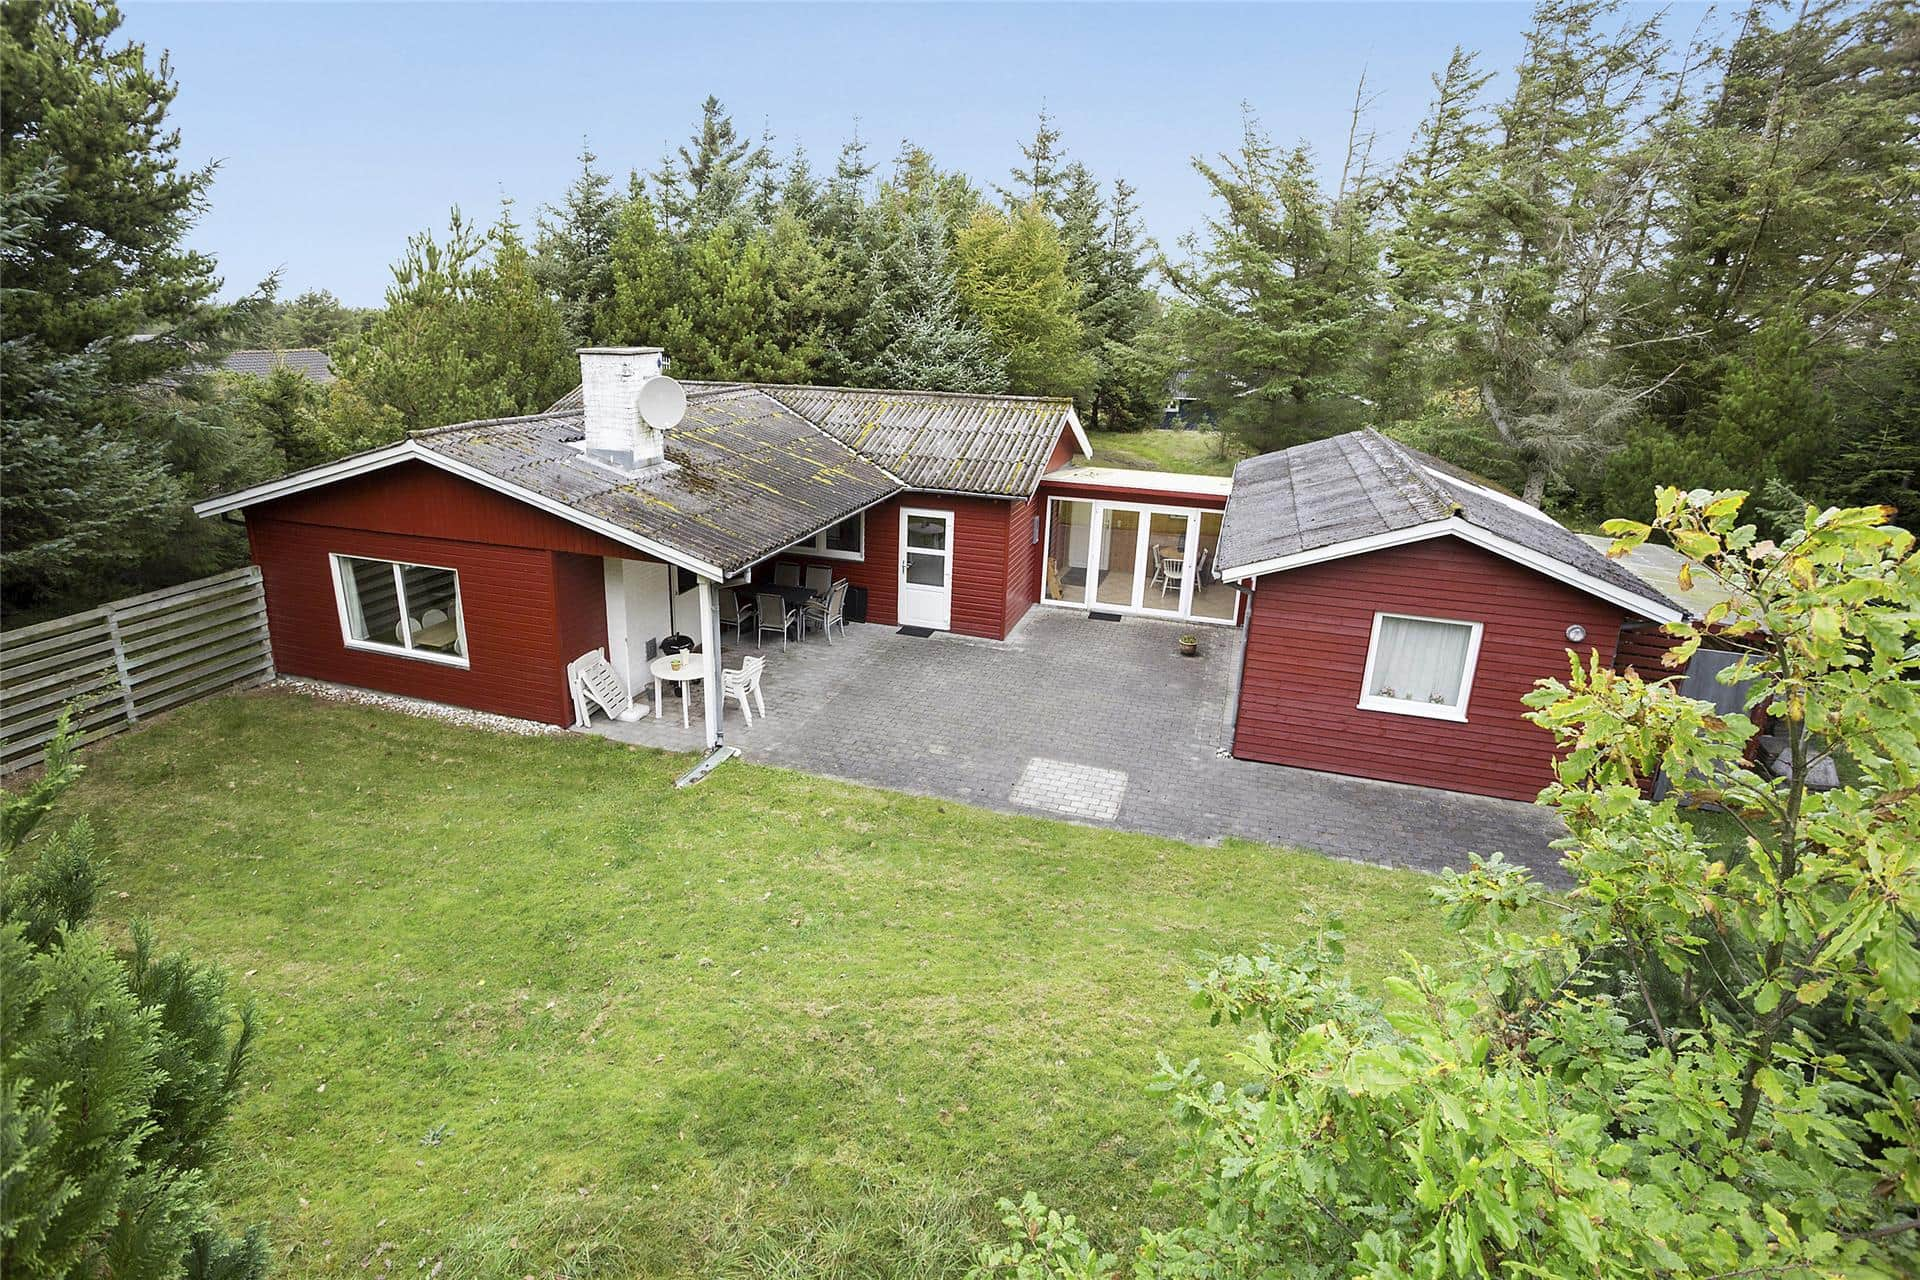 Image 1-13 Holiday-home 616, Tunvej 8, DK - 7700 Thisted